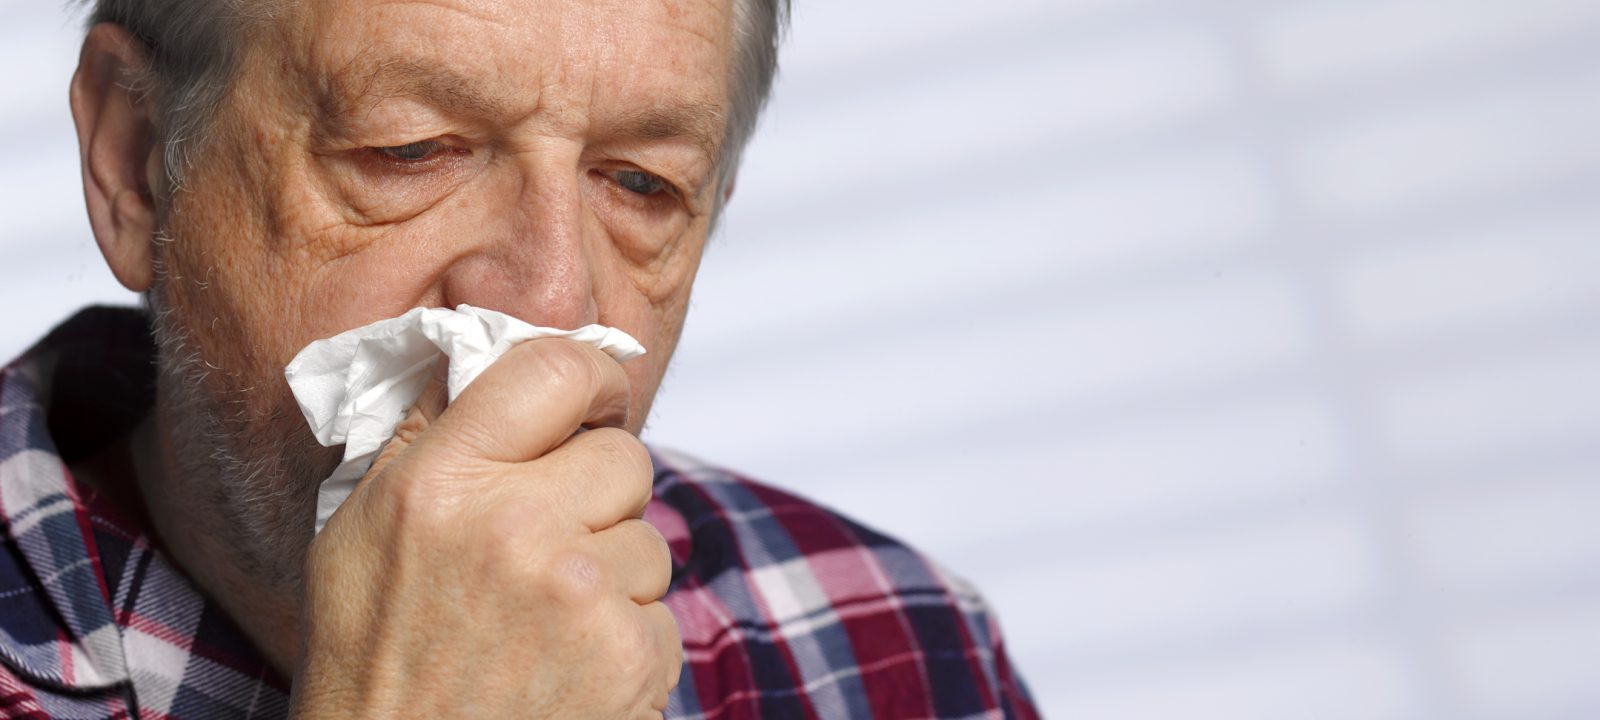 Senior man with a cold blowing his nose